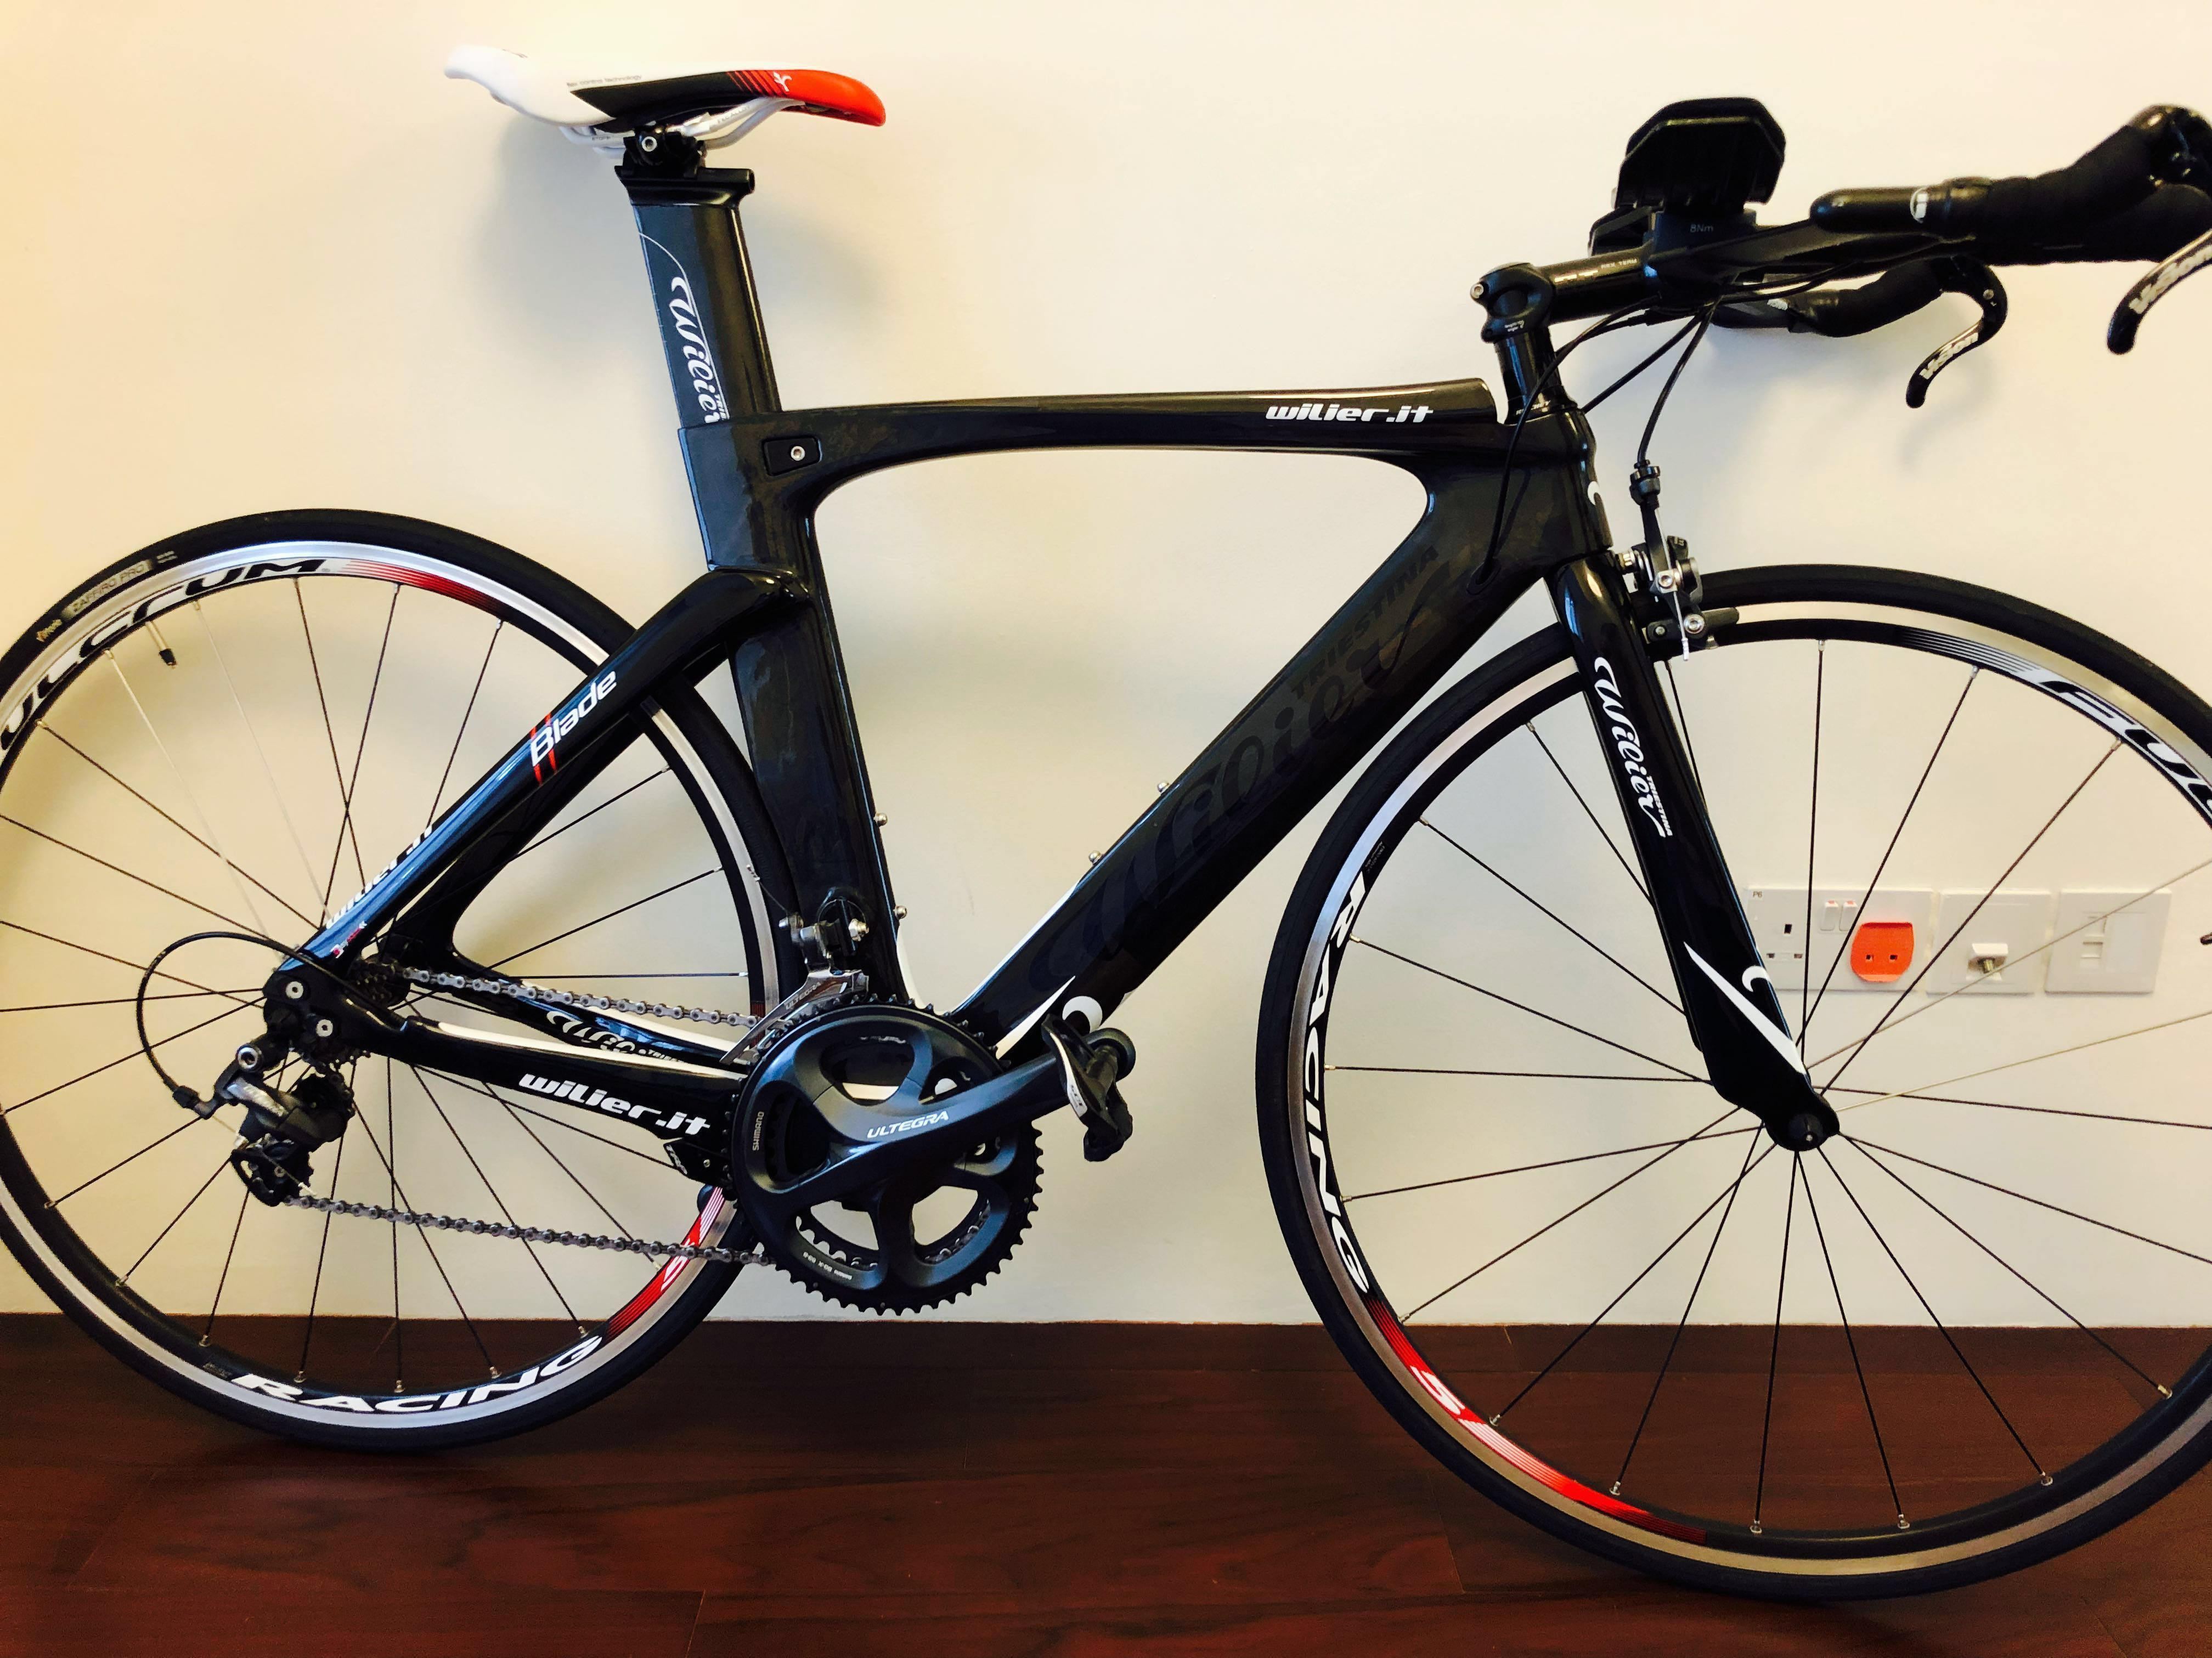 b6aa7628d10 Wilier Blade Ultegra Tri Bike, Bicycles & PMDs, Bicycles, Road Bikes on  Carousell